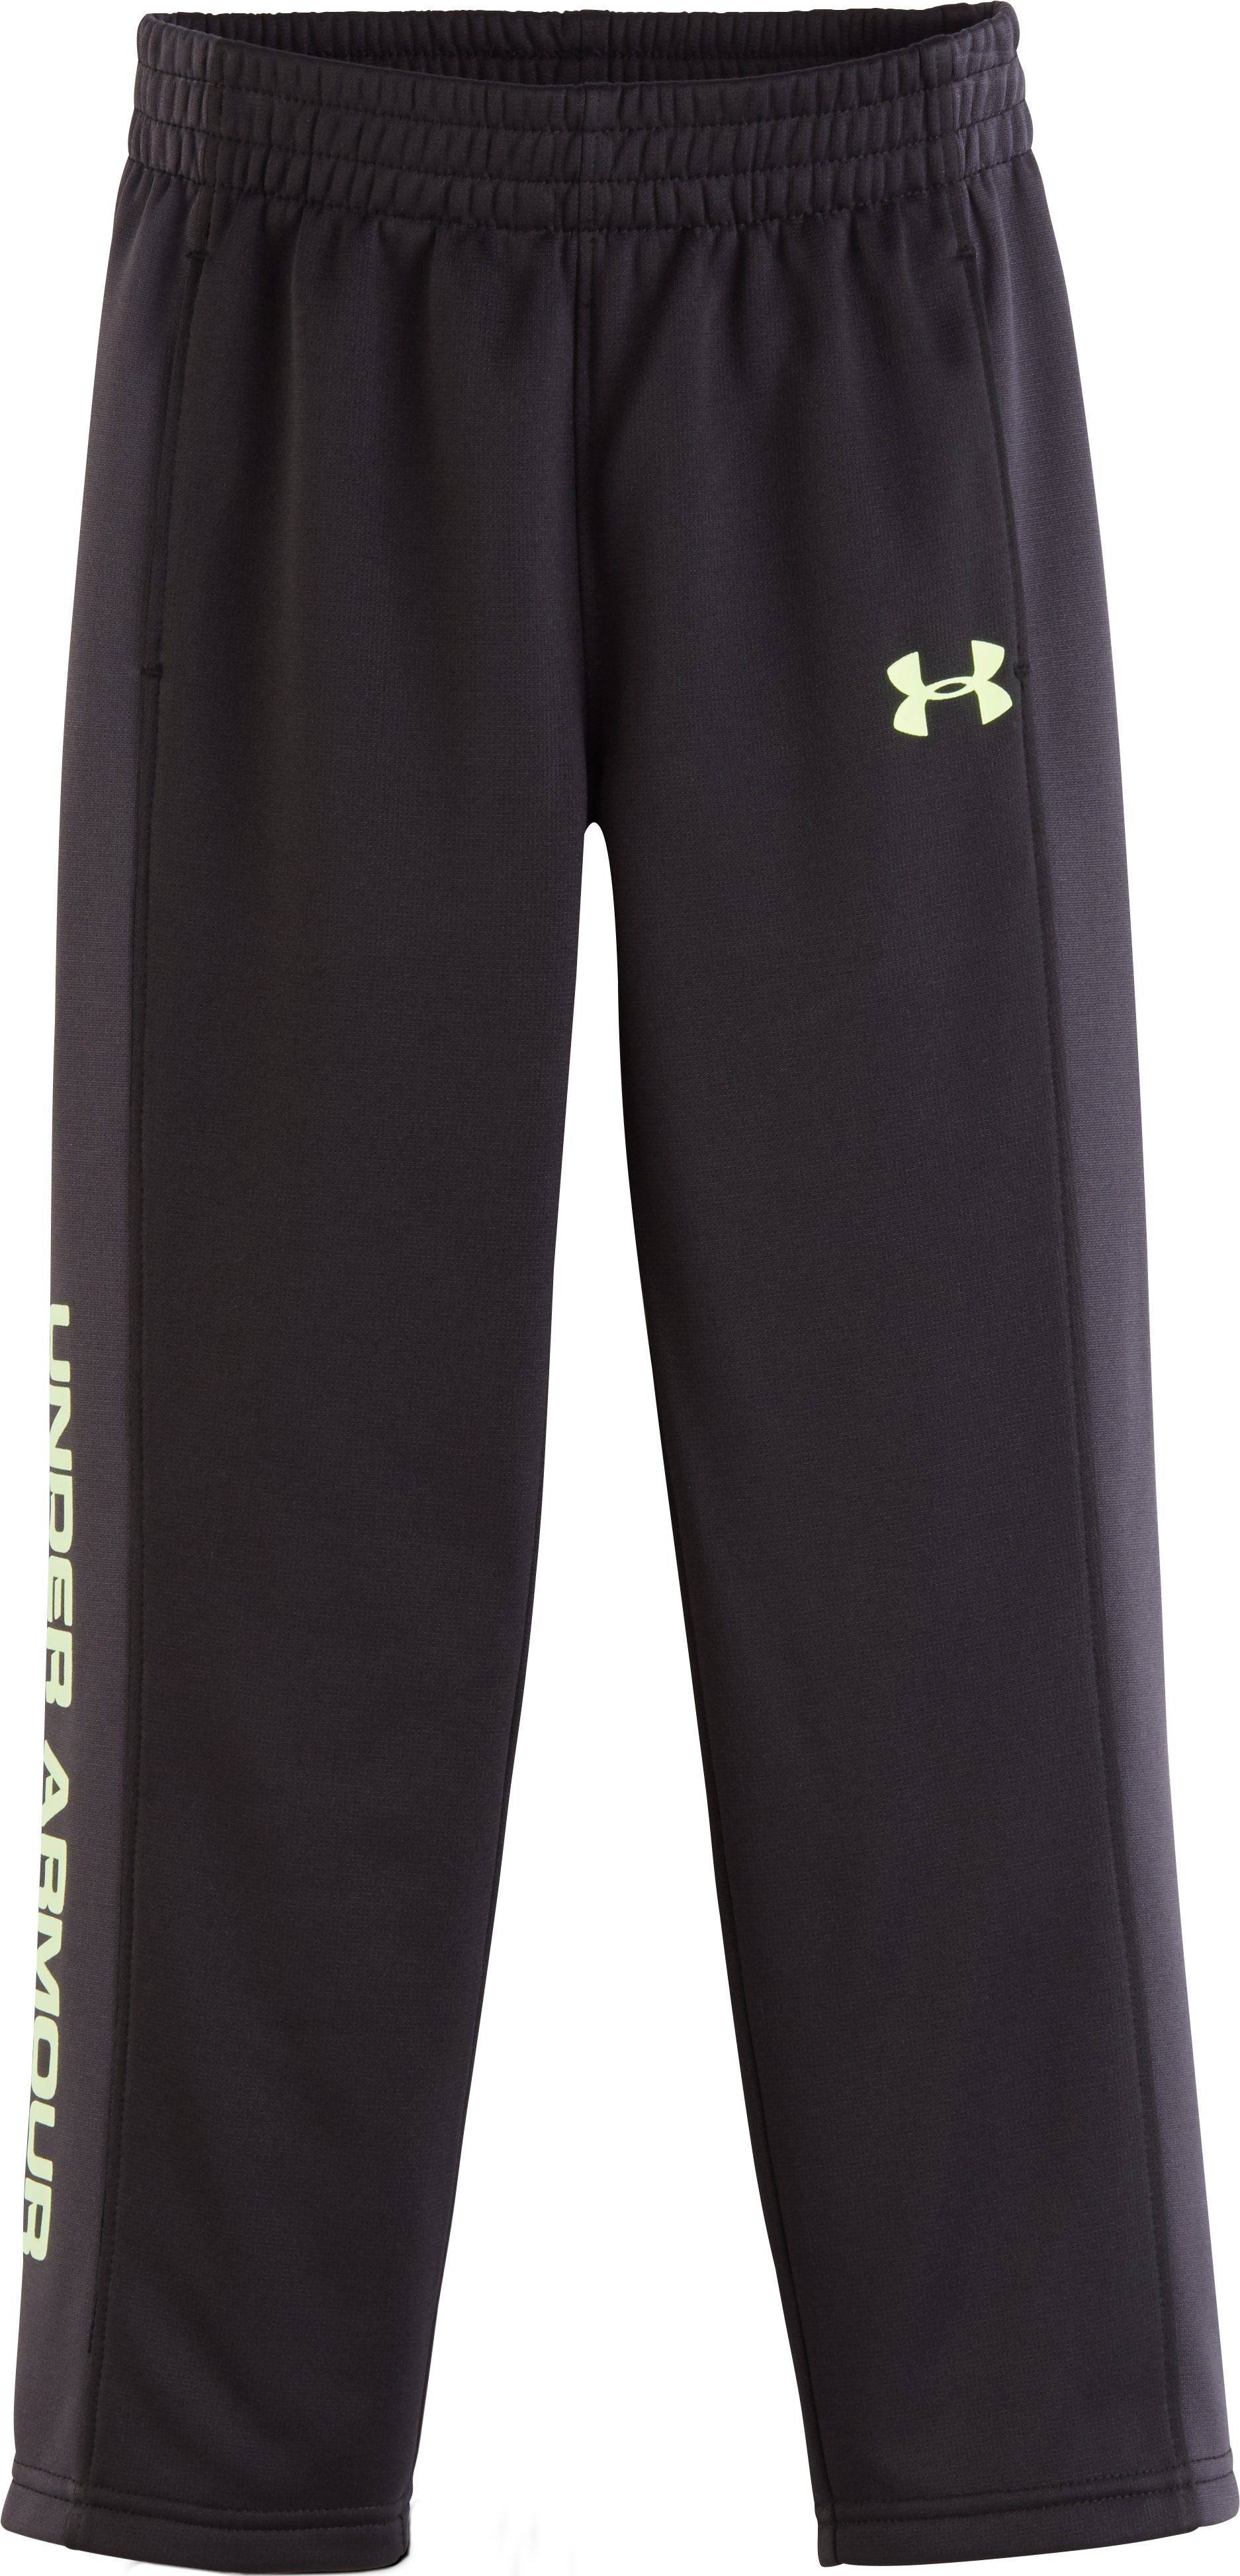 Boys' Pre-School UA Stampede Pants, Black , Laydown